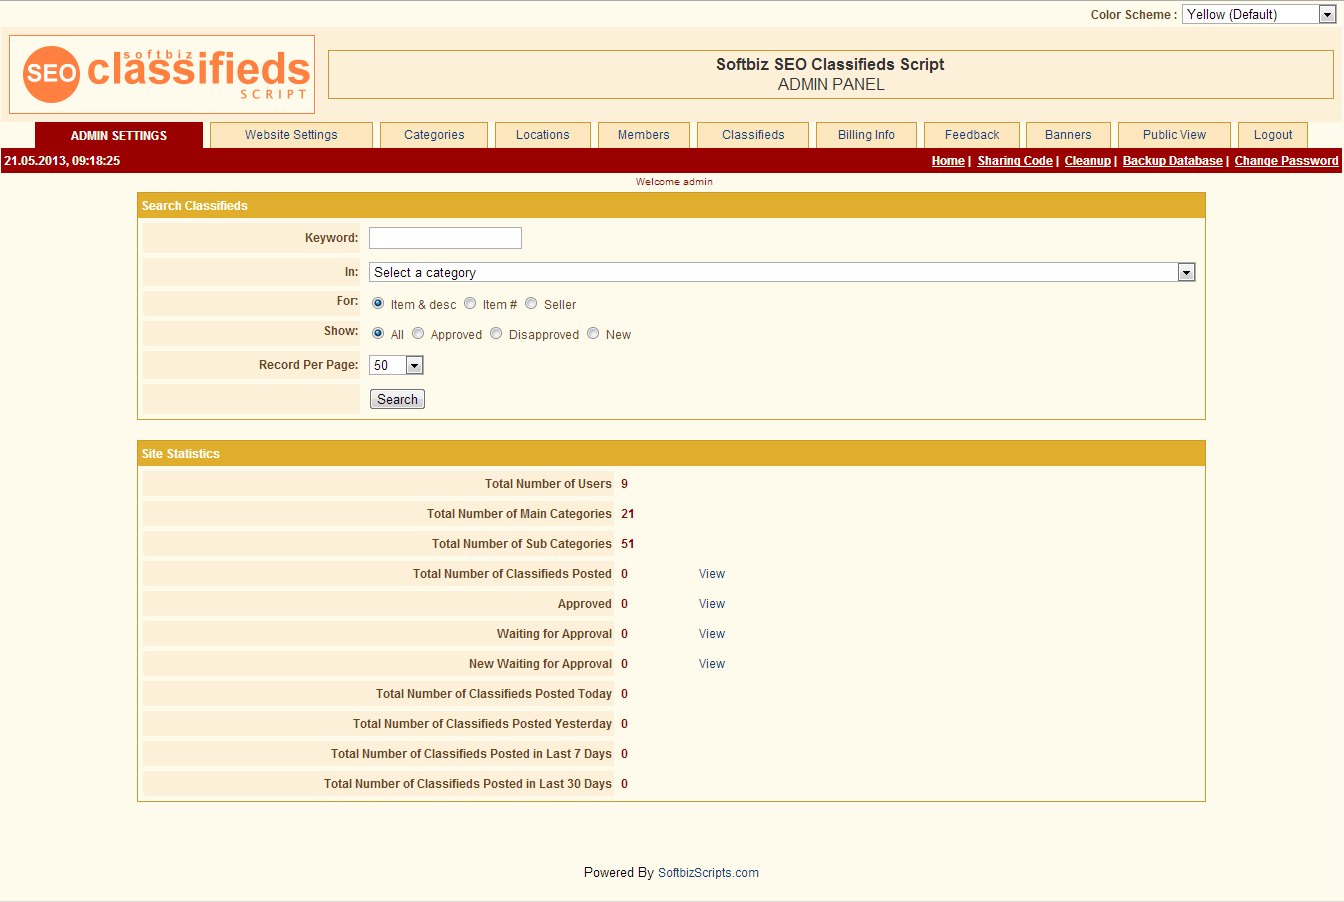 SEO Classifieds Script, Website Builder Software Screenshot